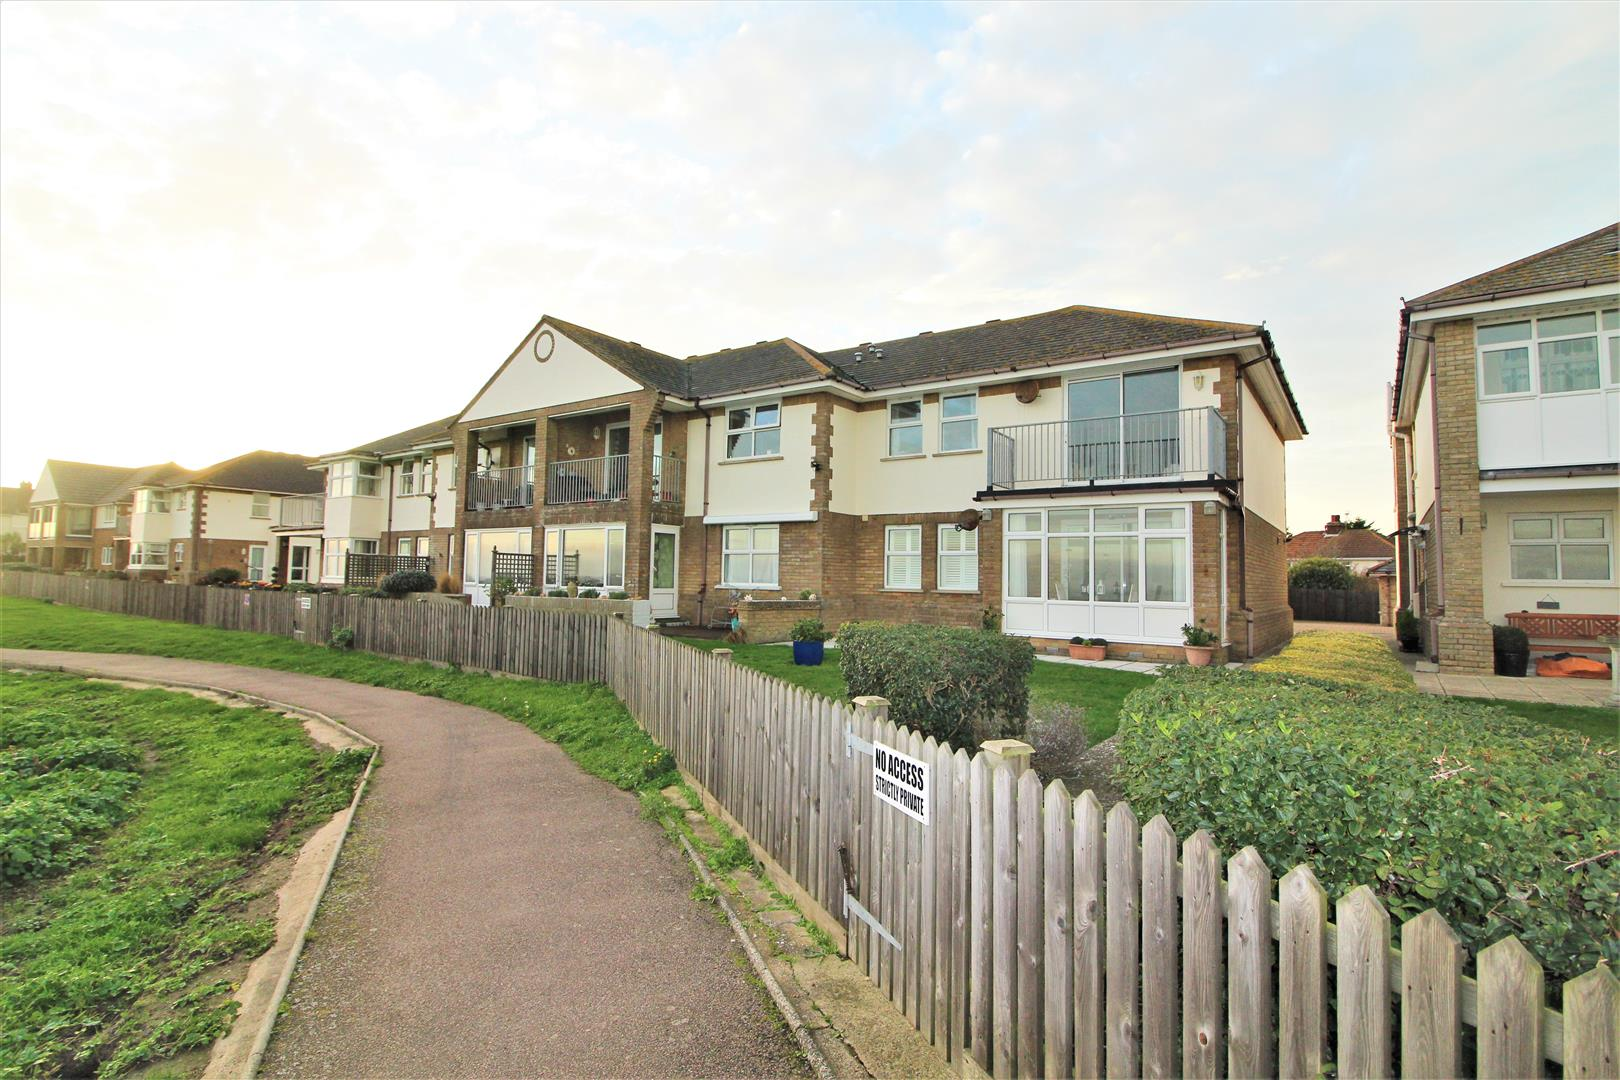 Seaview Heights, Walton On The Naze, Essex, CO14 8ET